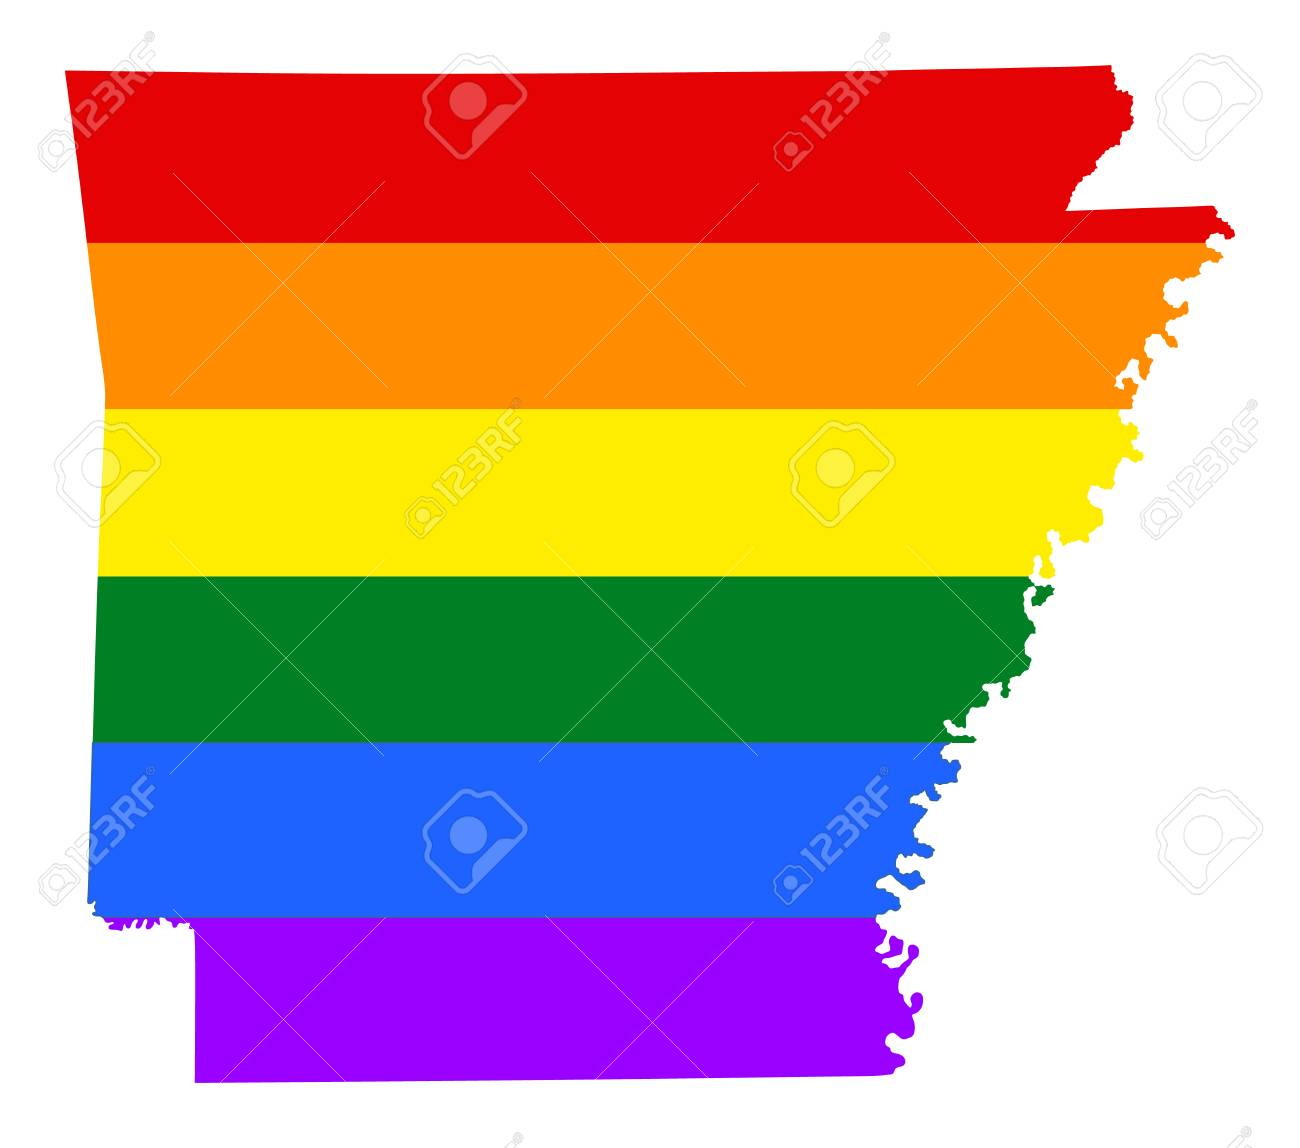 Arkansas United States Map.Arkansas Pride Gay Map With Rainbow Flag Colors United States